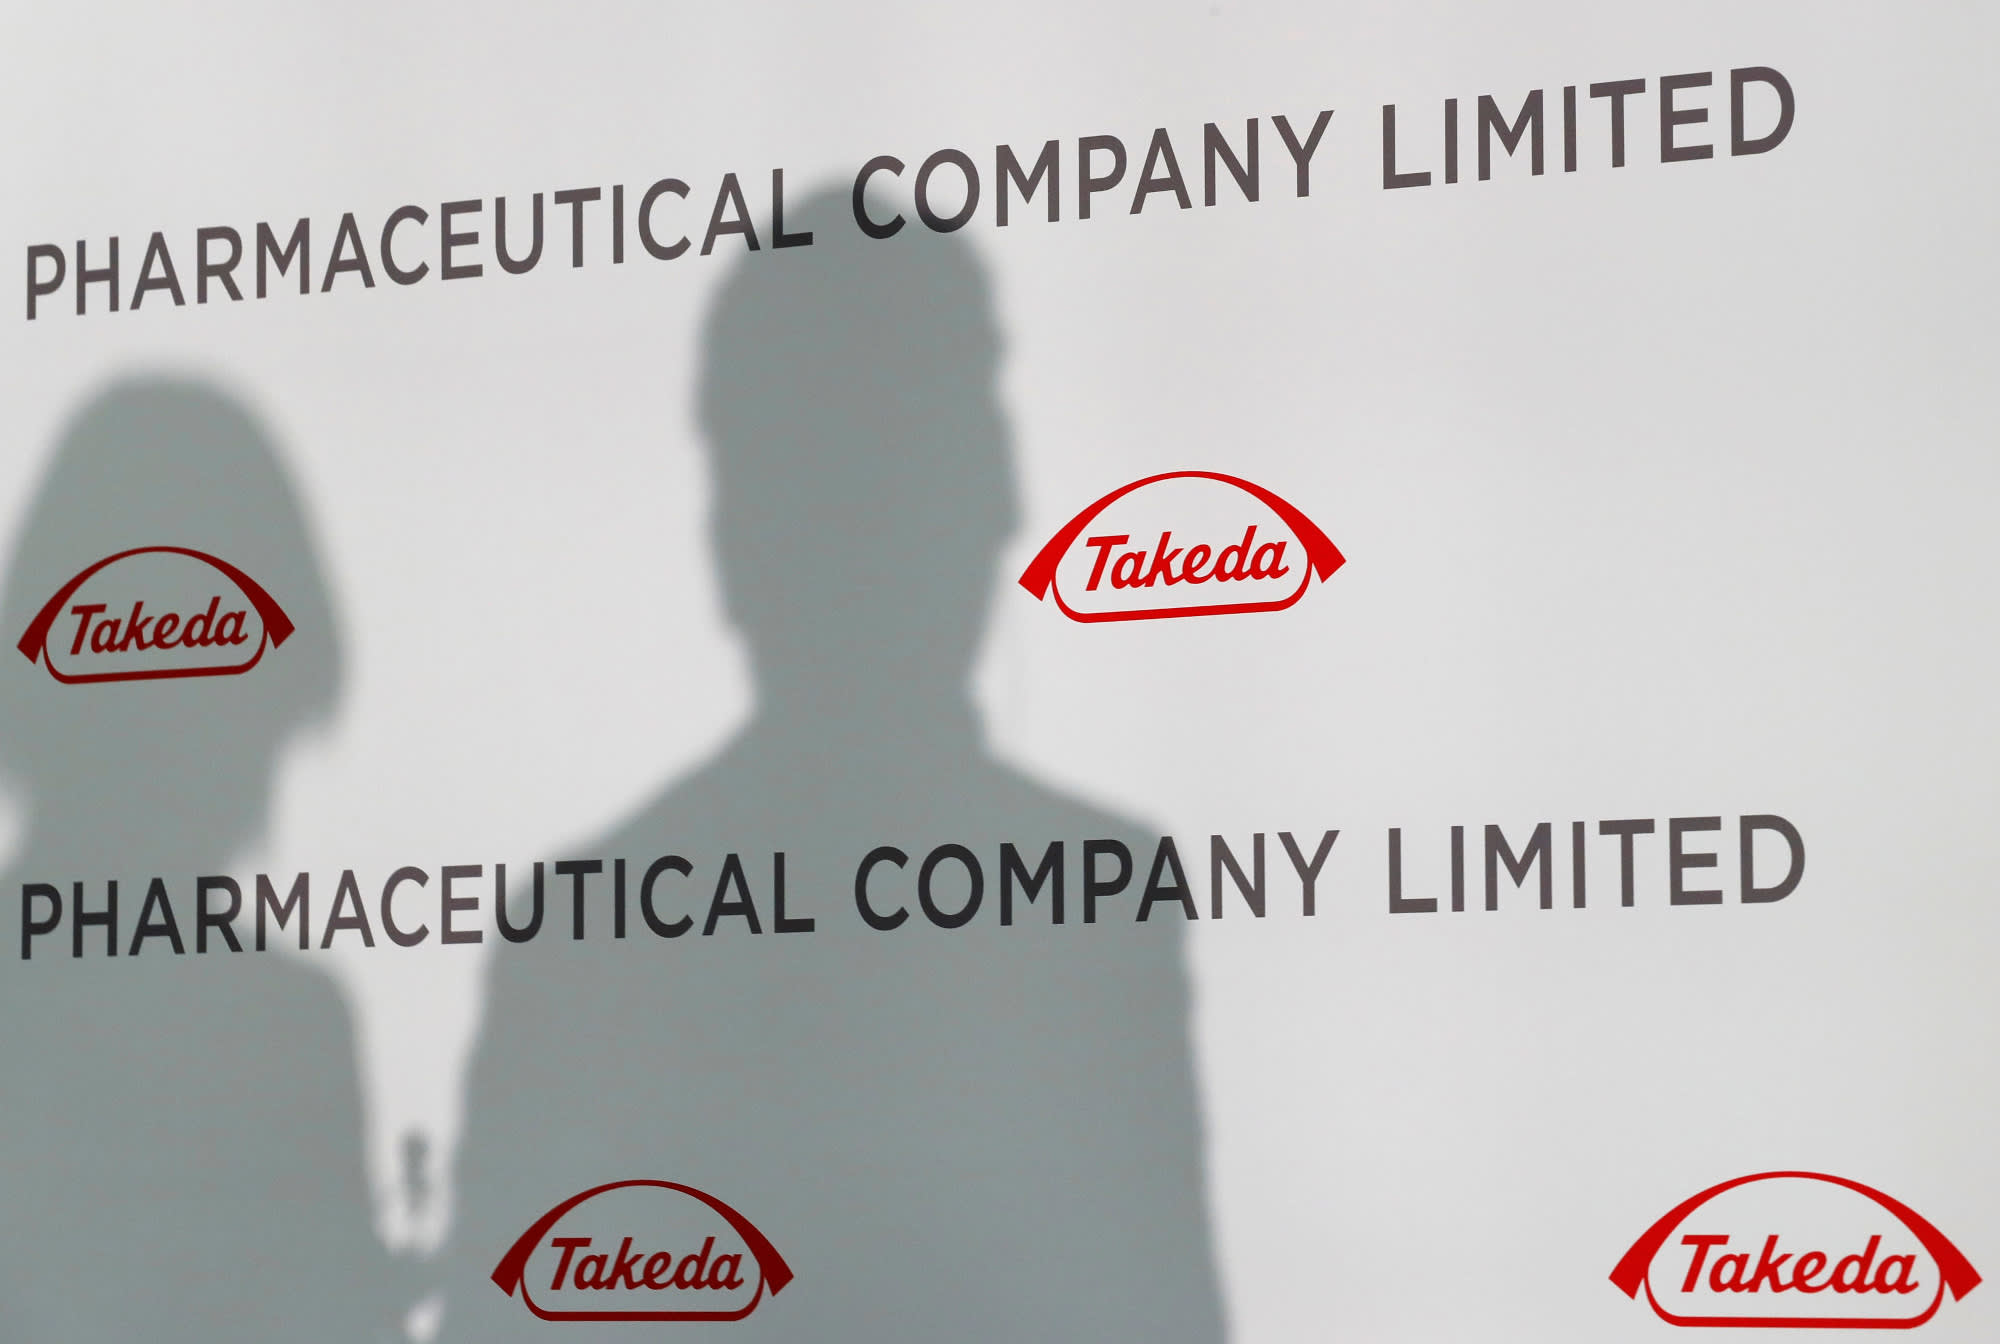 Takeda Alumni Question Shire Purchase In Open Letter Nikkei Asian